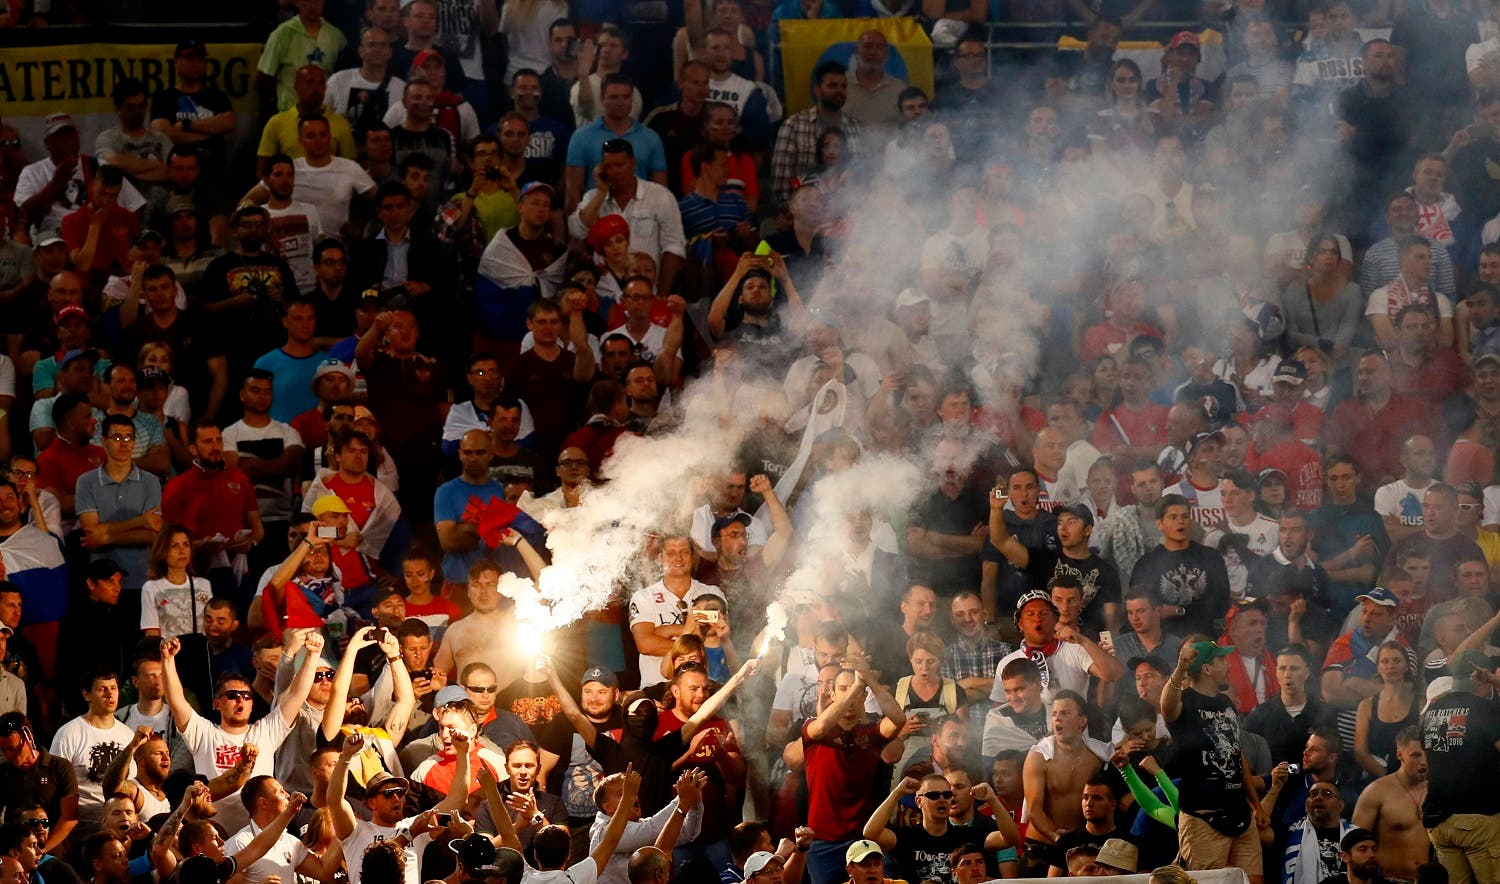 Football Soccer - England v Russia - EURO 2016 - Group B - Stade V?lodrome, Marseille, France - 11/6/16 Russia fans let off a flare REUTERS/Jason Cairnduff